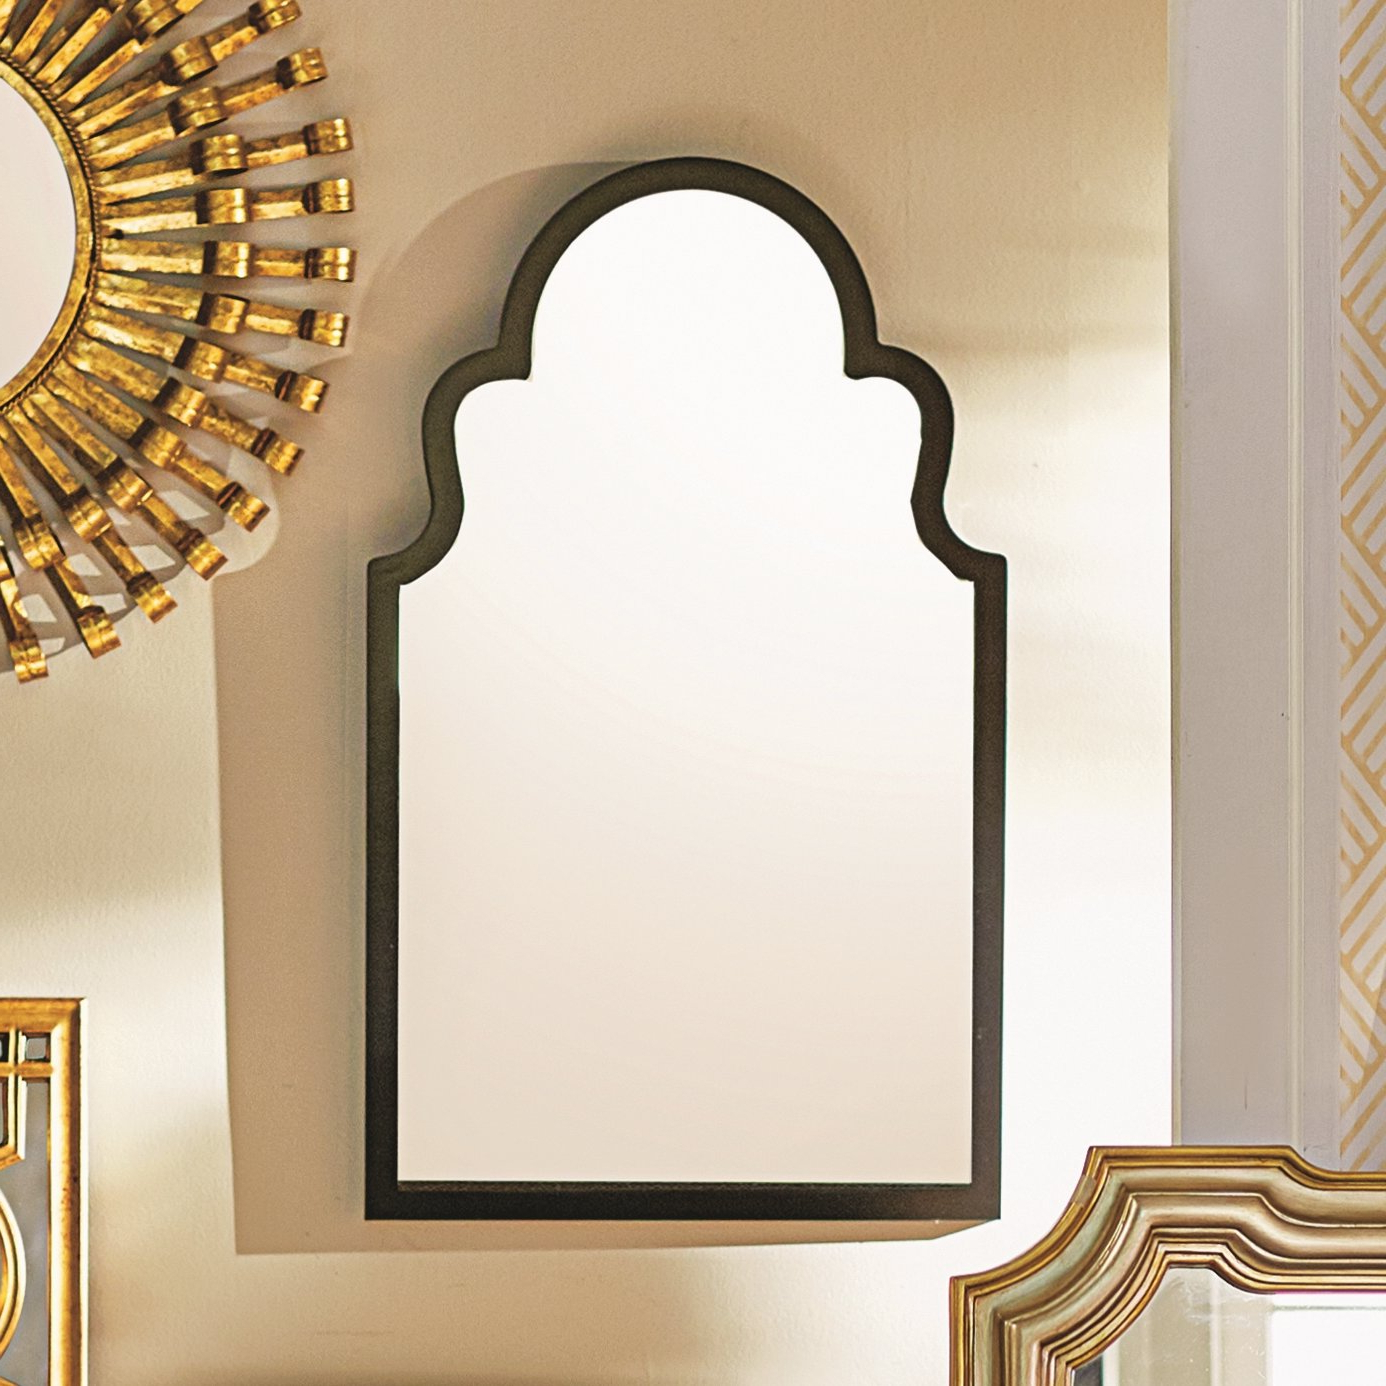 Most Popular Fifi Contemporary Arch Wall Mirror With Regard To Fifi Contemporary Arch Wall Mirrors (Gallery 3 of 20)